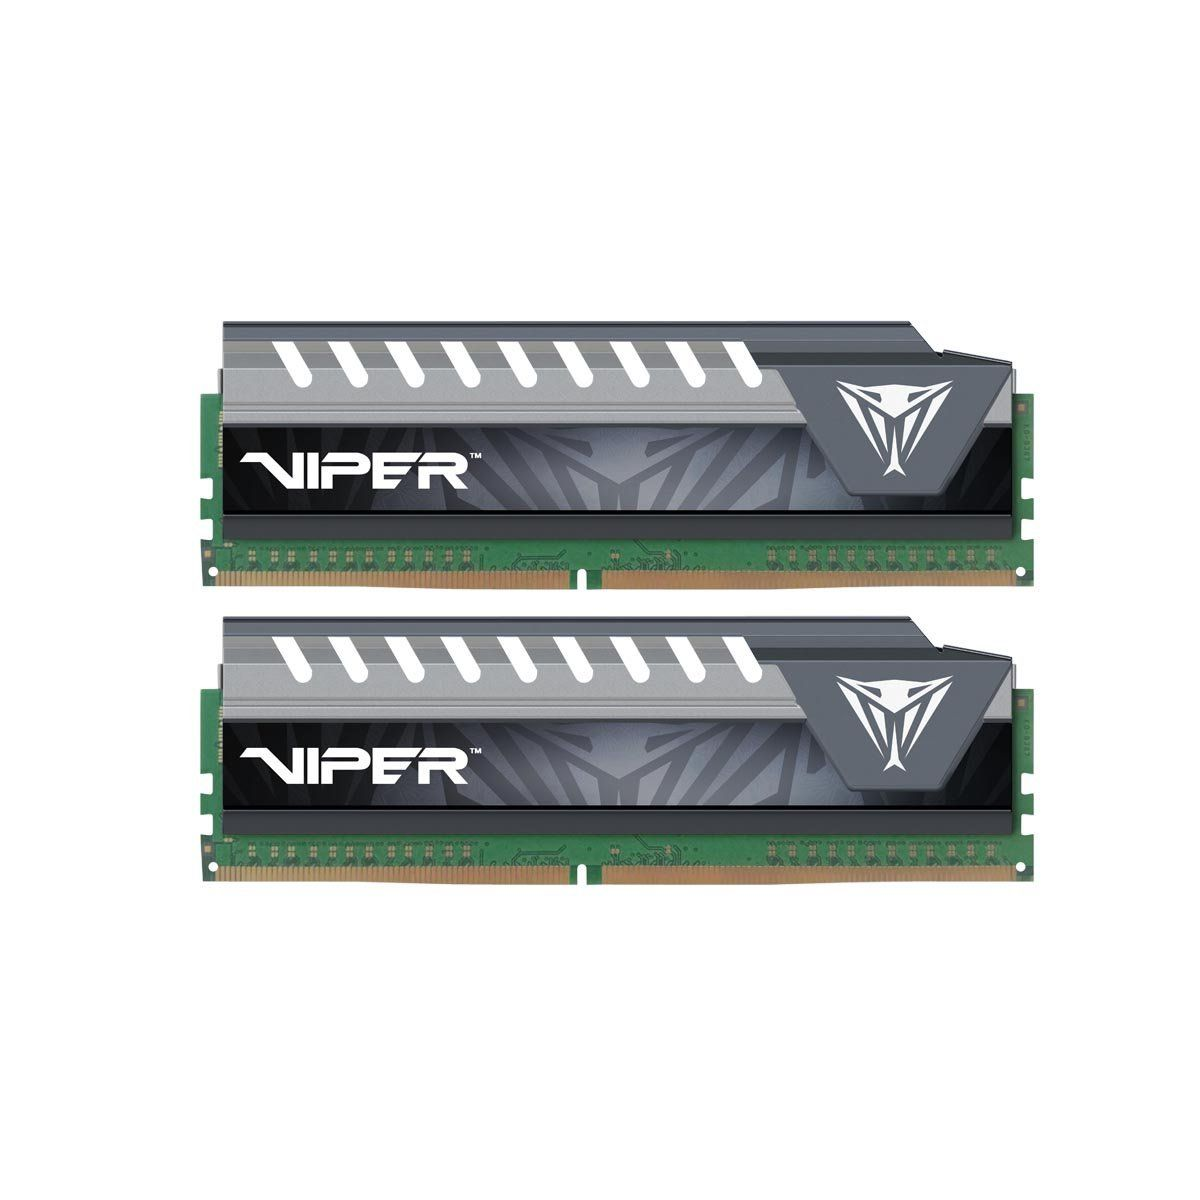 Memória Performance Viper Elite DDR4 8GB (2x4GB) Memory Kit PC4-17000 (2133MHZ)